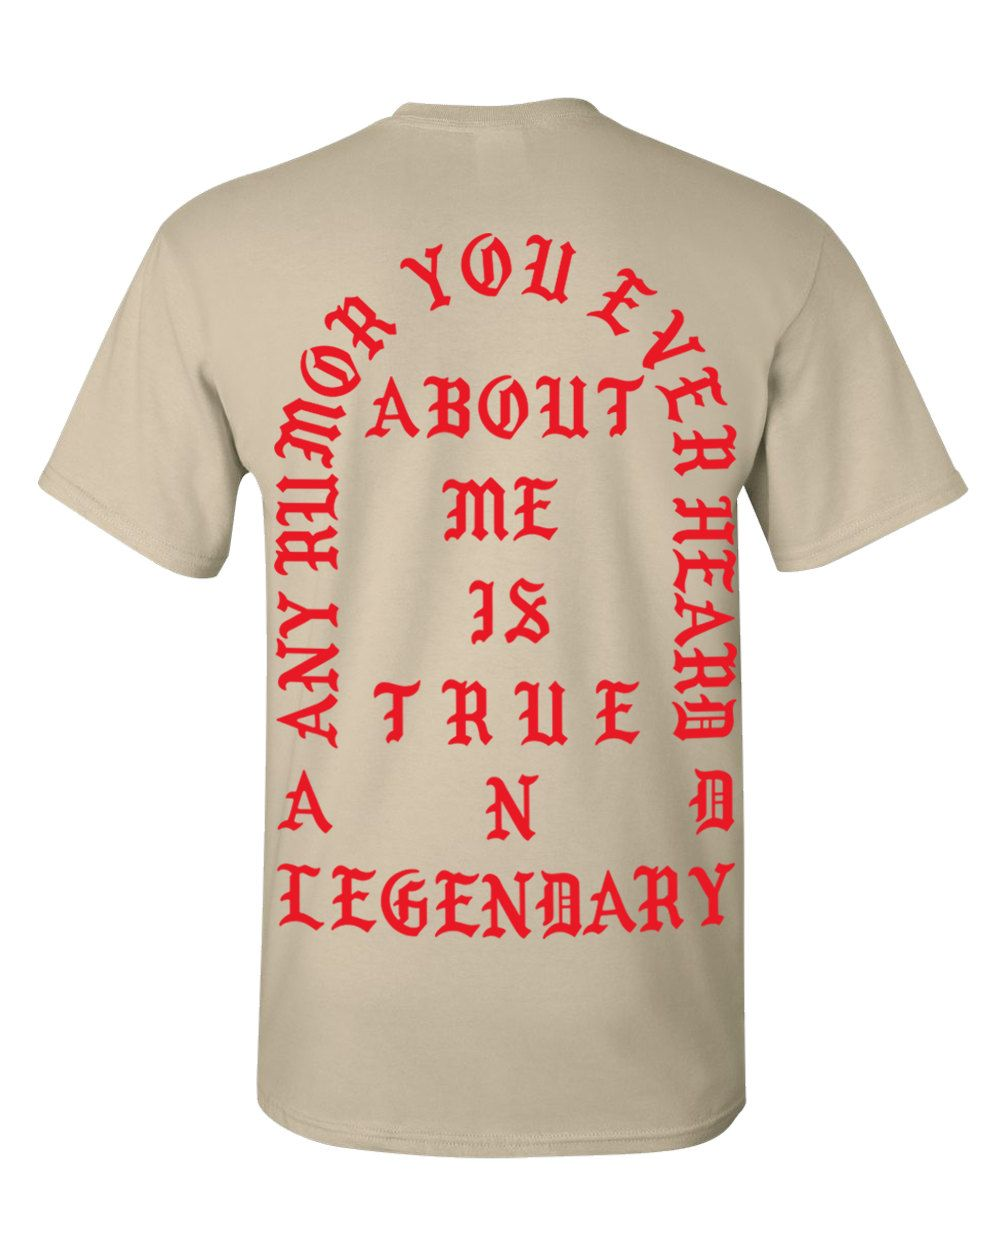 finest selection 31cc3 ca6c9 Any Rumor You Ever Heard About Me Is True And Legendary. Yeezus Tour  T-Shirt. Kanye West Tour Apparel. by MeowTangClan on Etsy